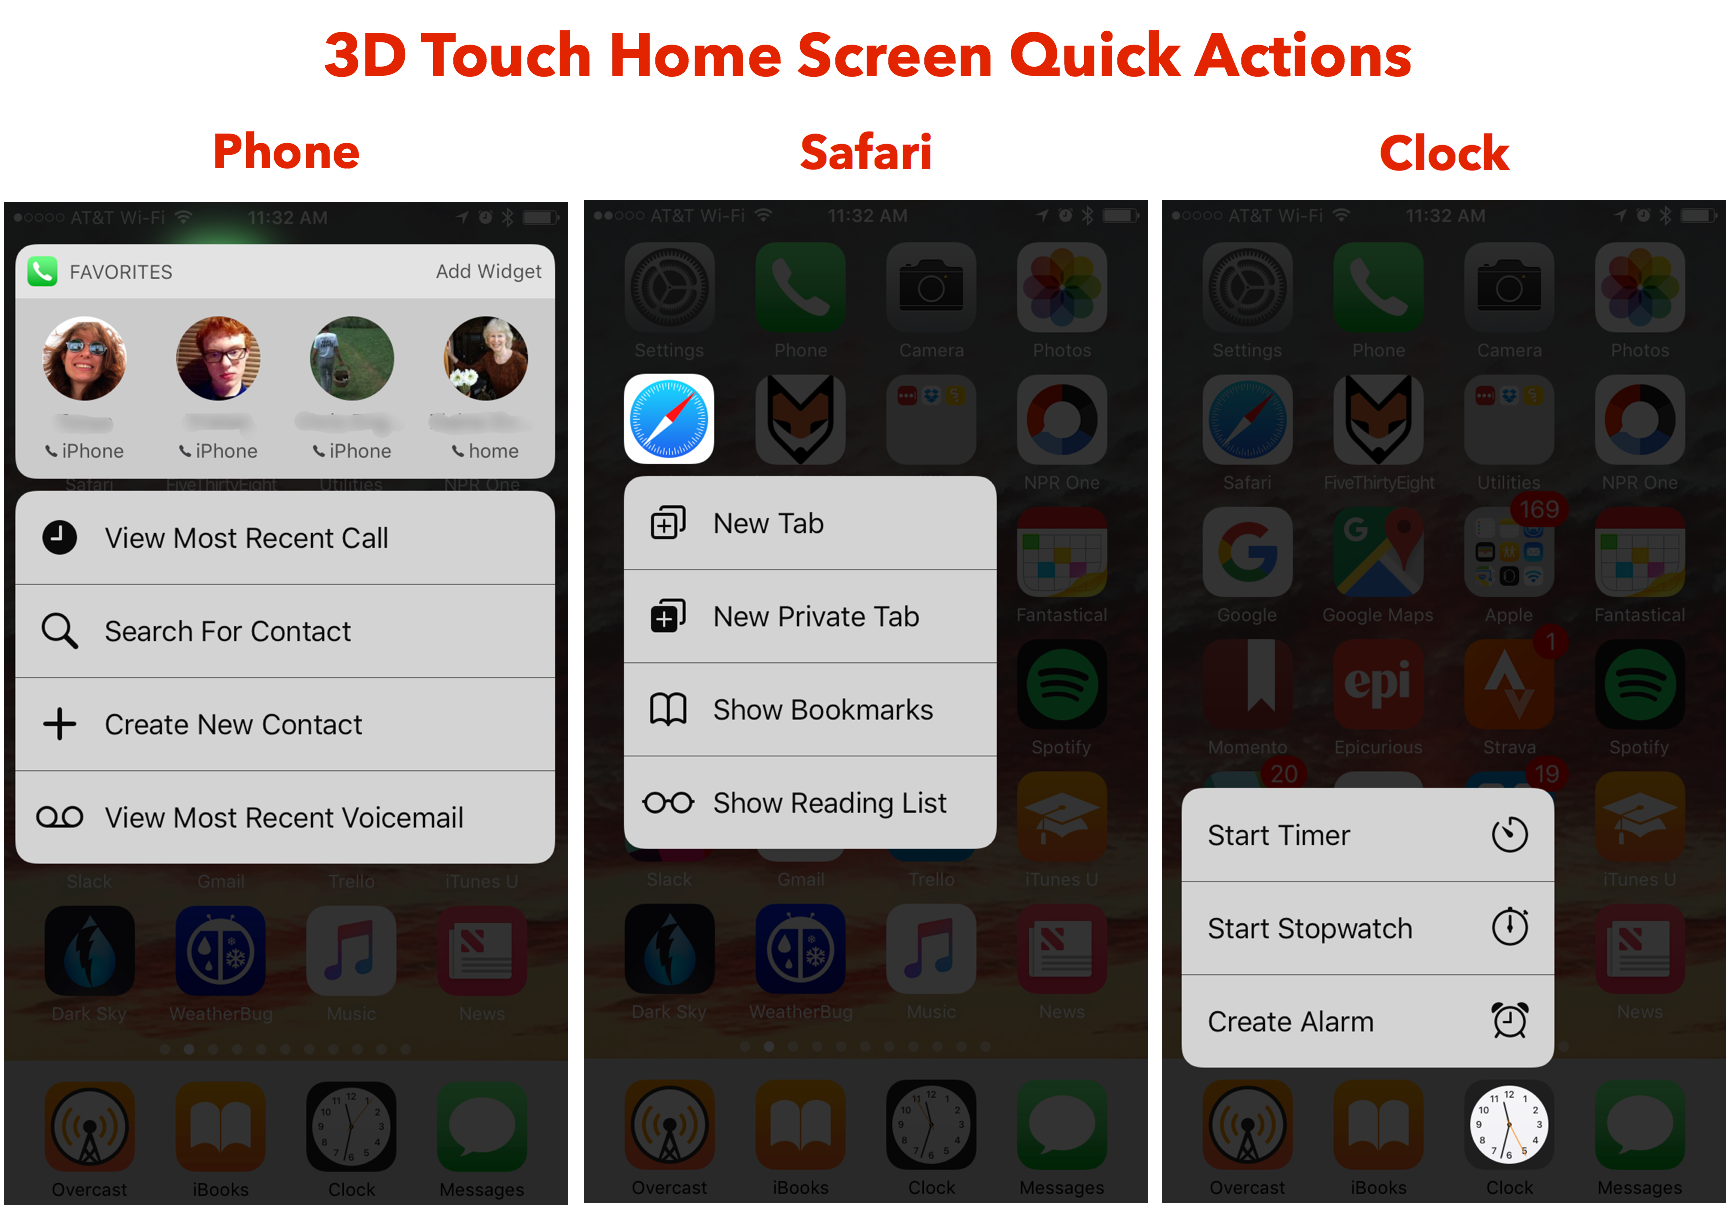 3D-Touch-Home-Quick-Actions.png